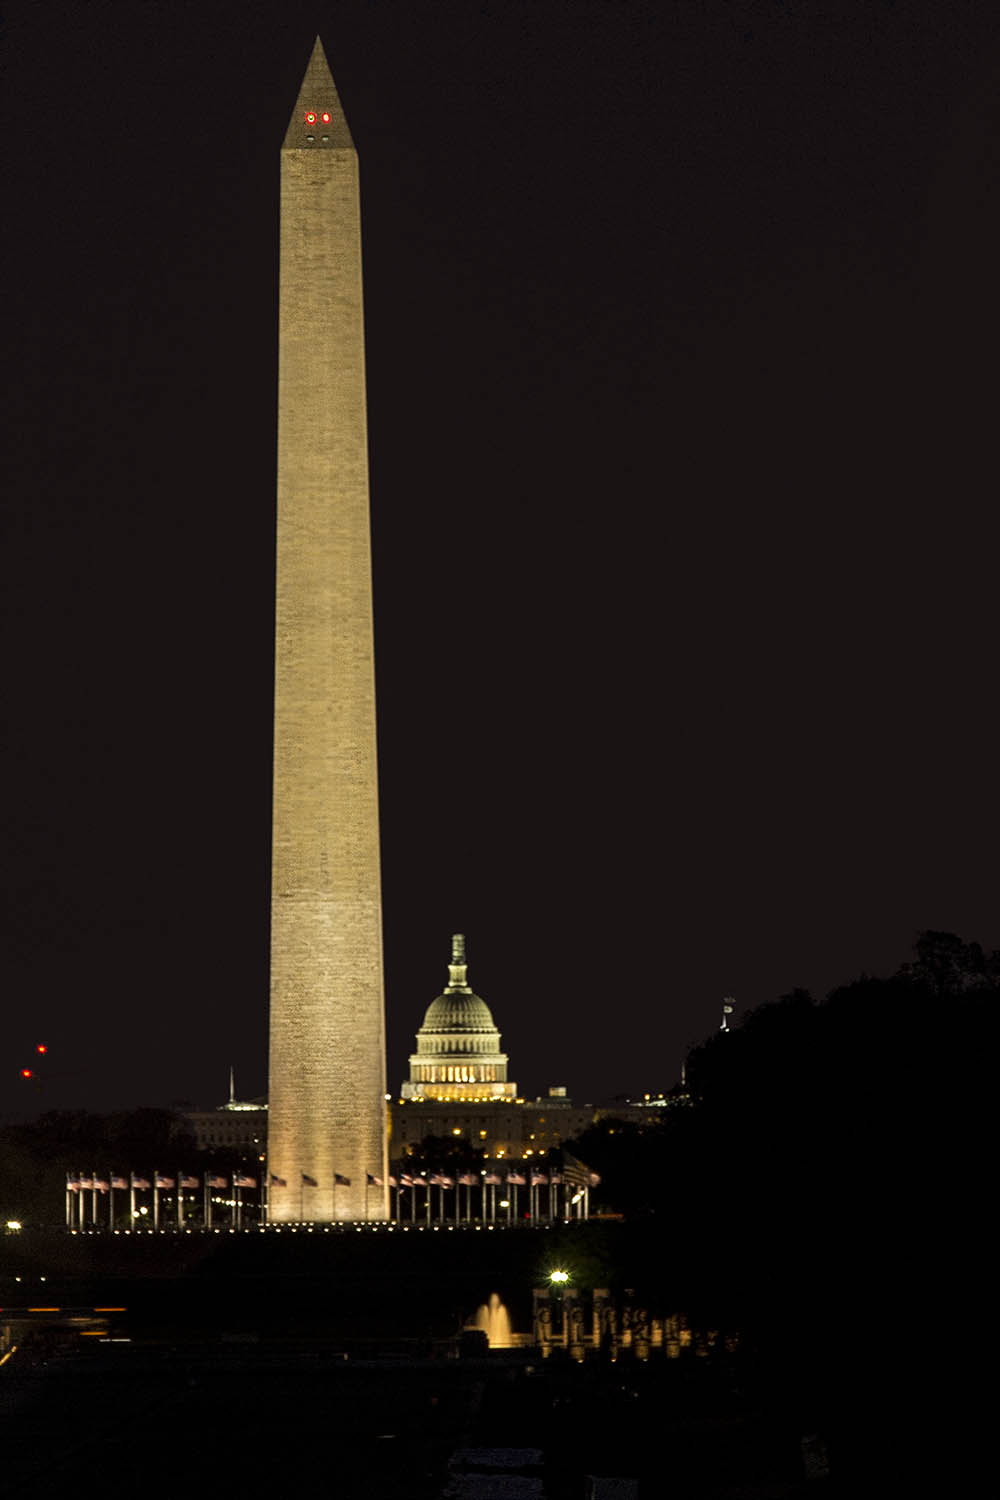 Nighttime Washington Monument.jpg